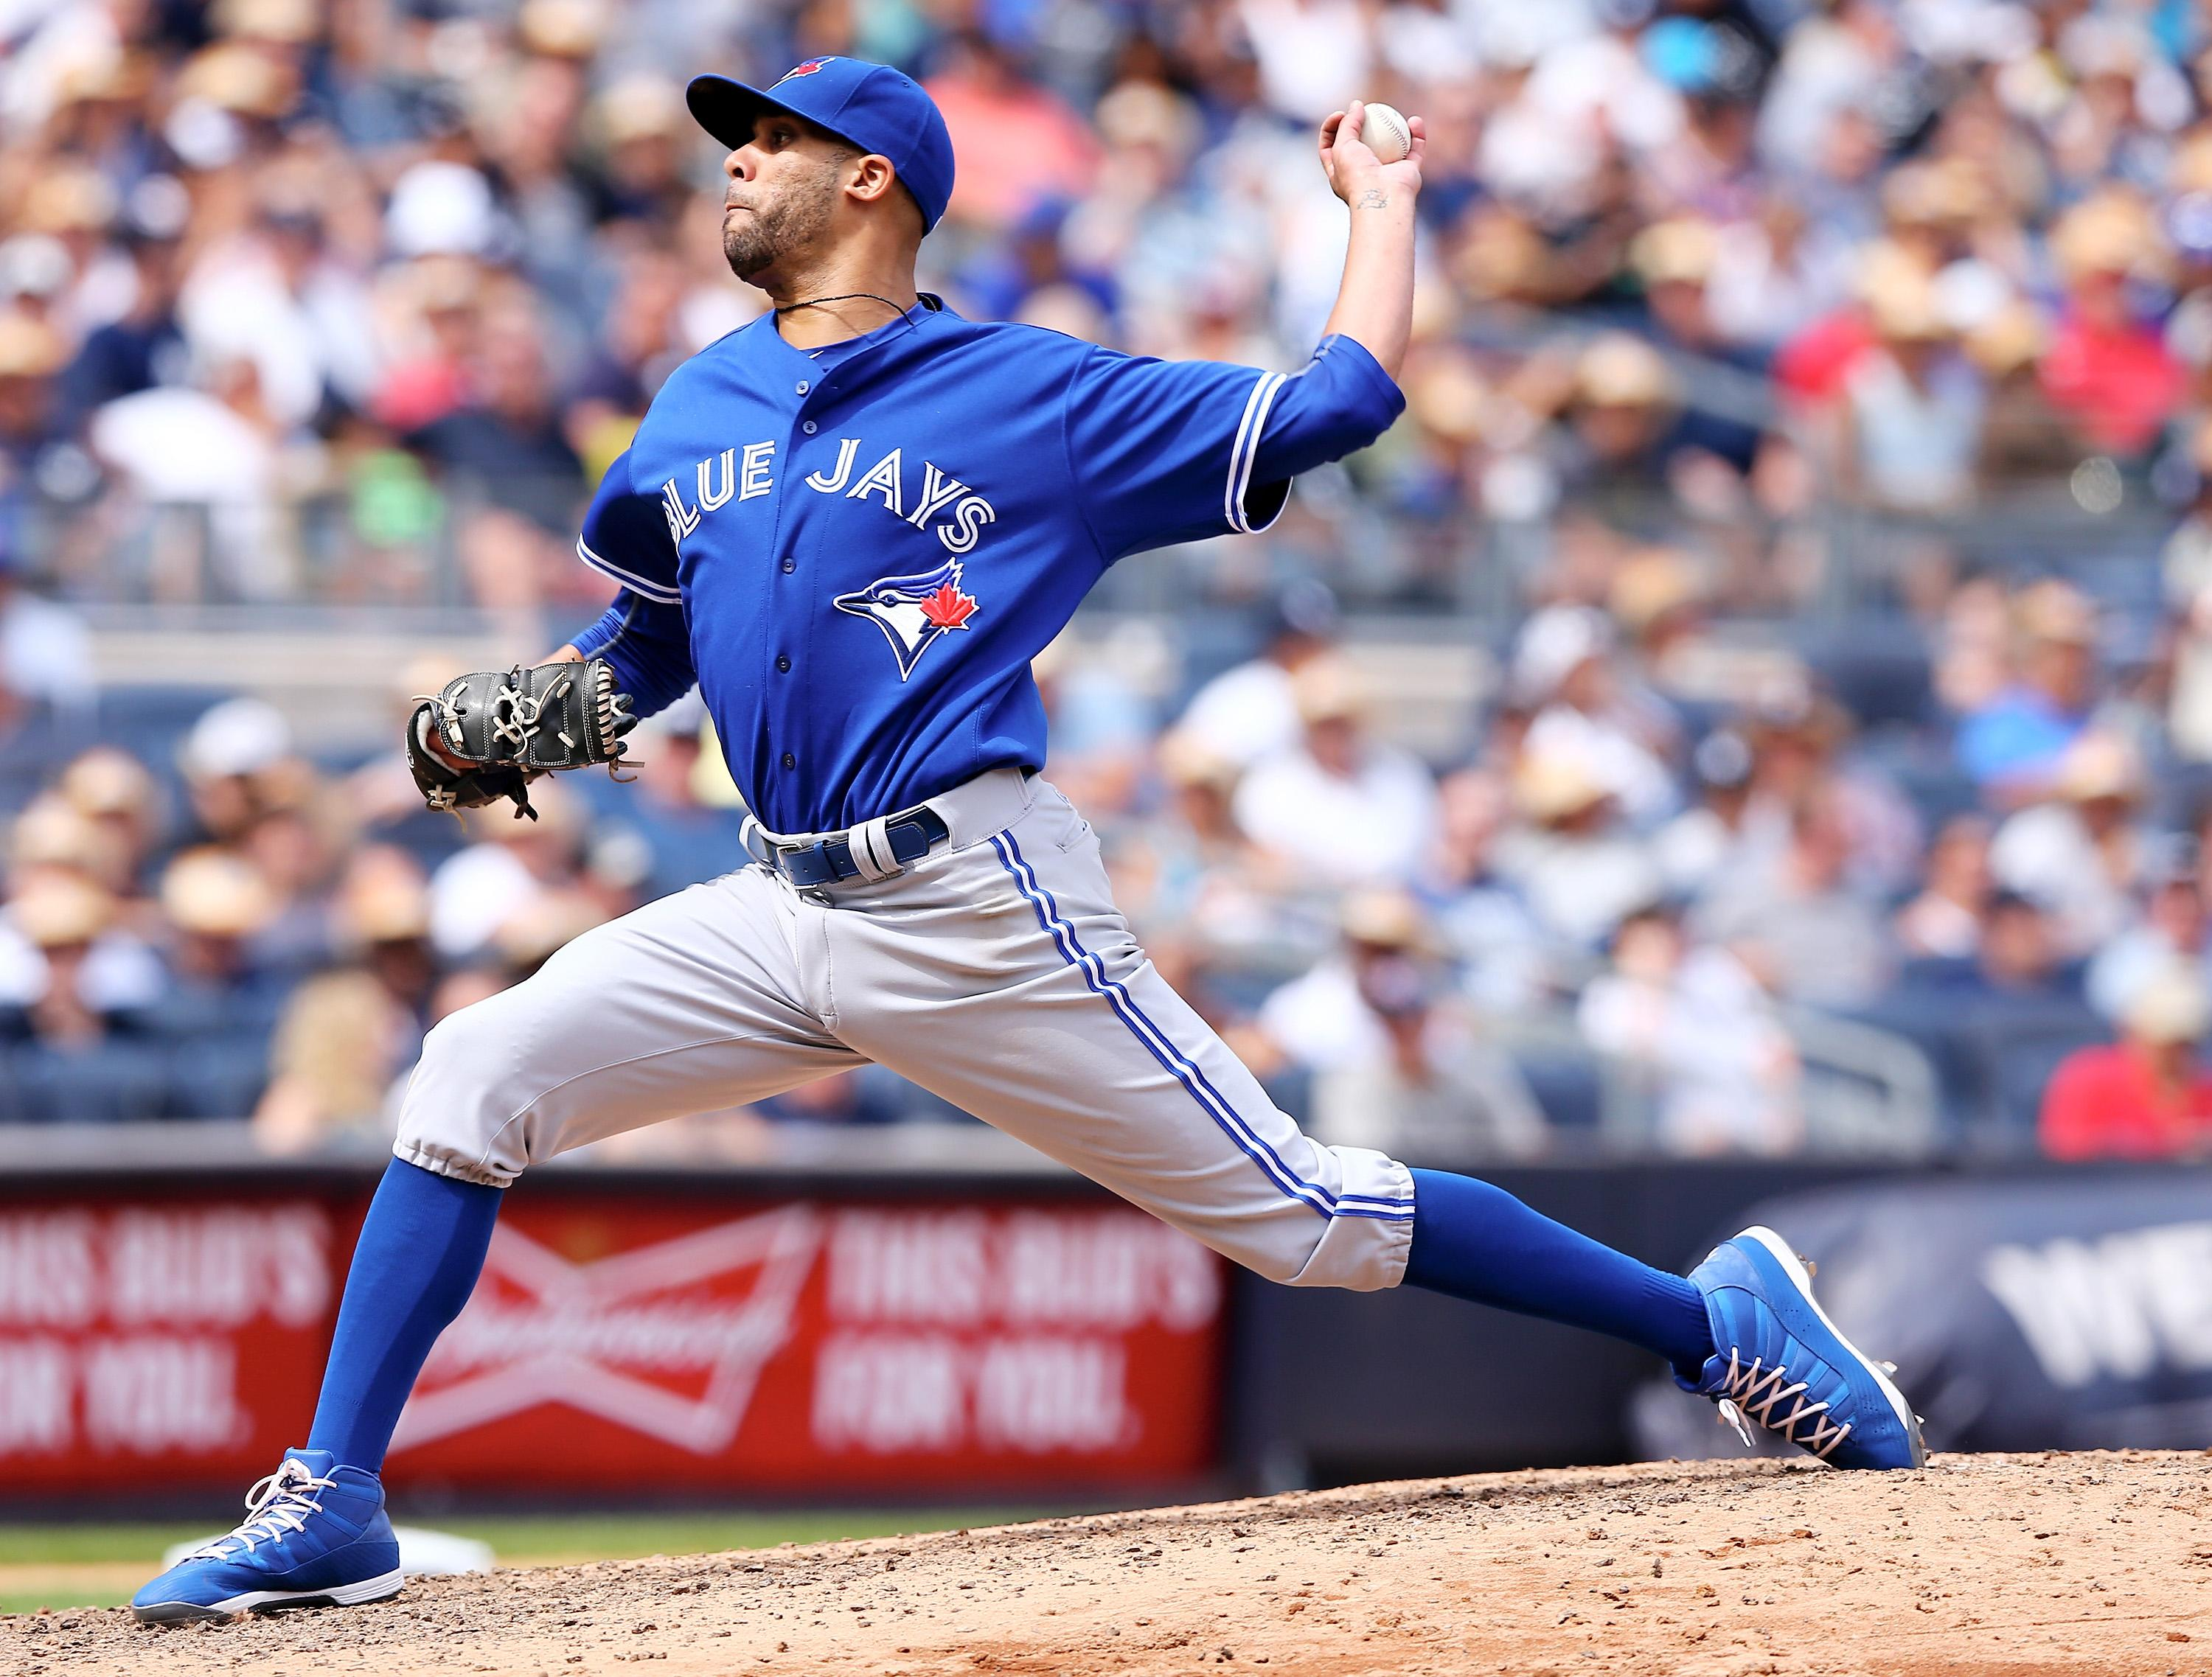 The Red Sox signed David Price to a record-breaking, seven-year, $217 million contract